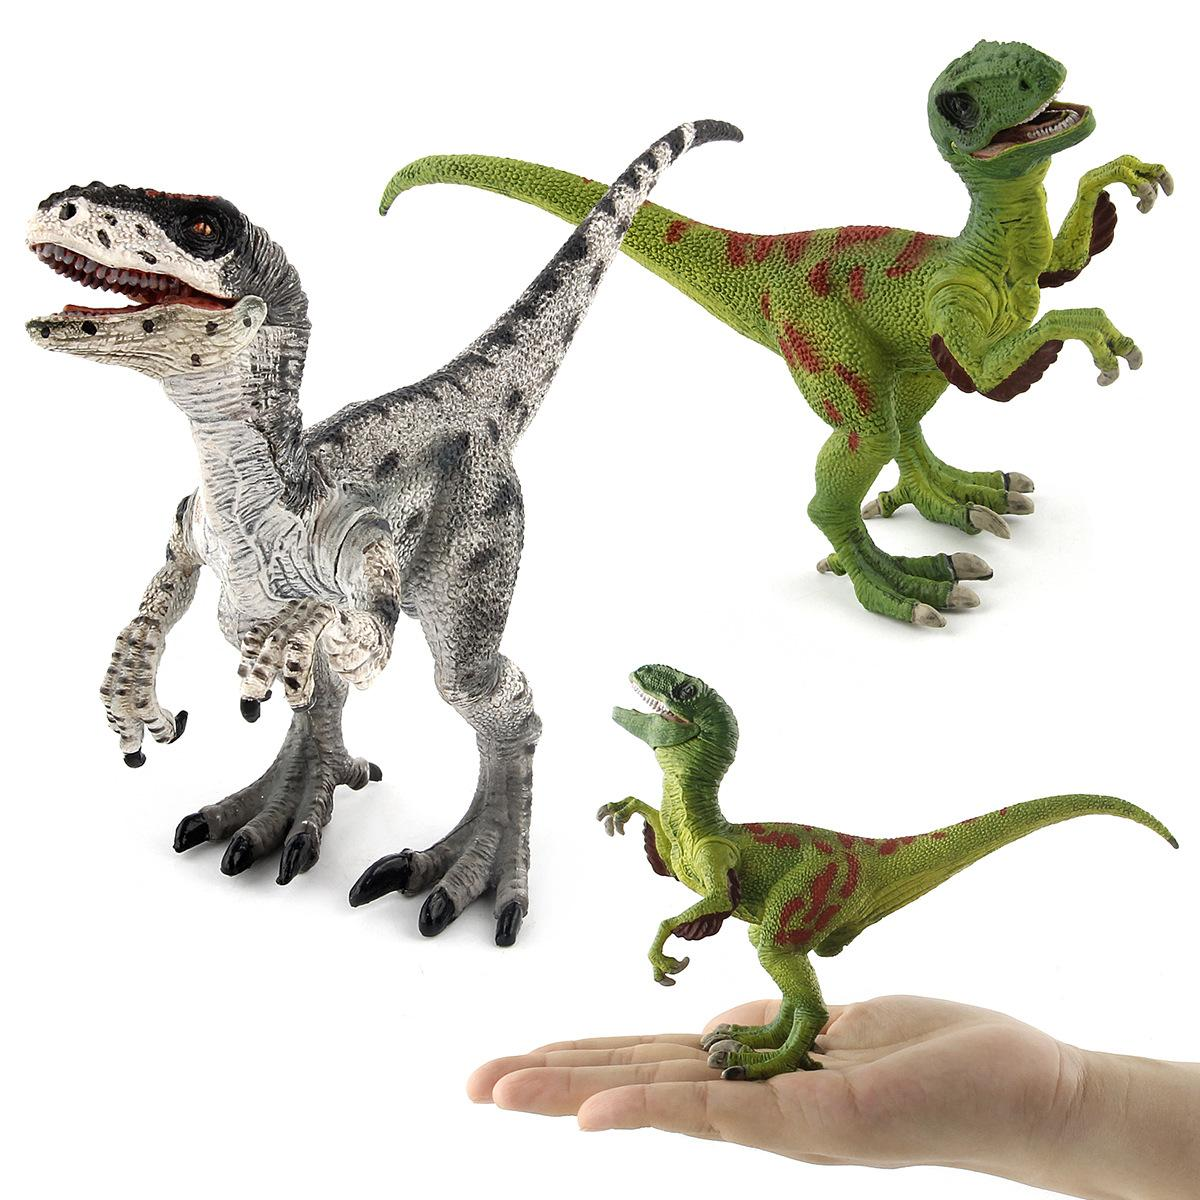 Export Hot Selling Jurassic World Swift And Violent Dragon Simulated Dinosaur Models Lower Jaw Mobile Swift And Violent long su